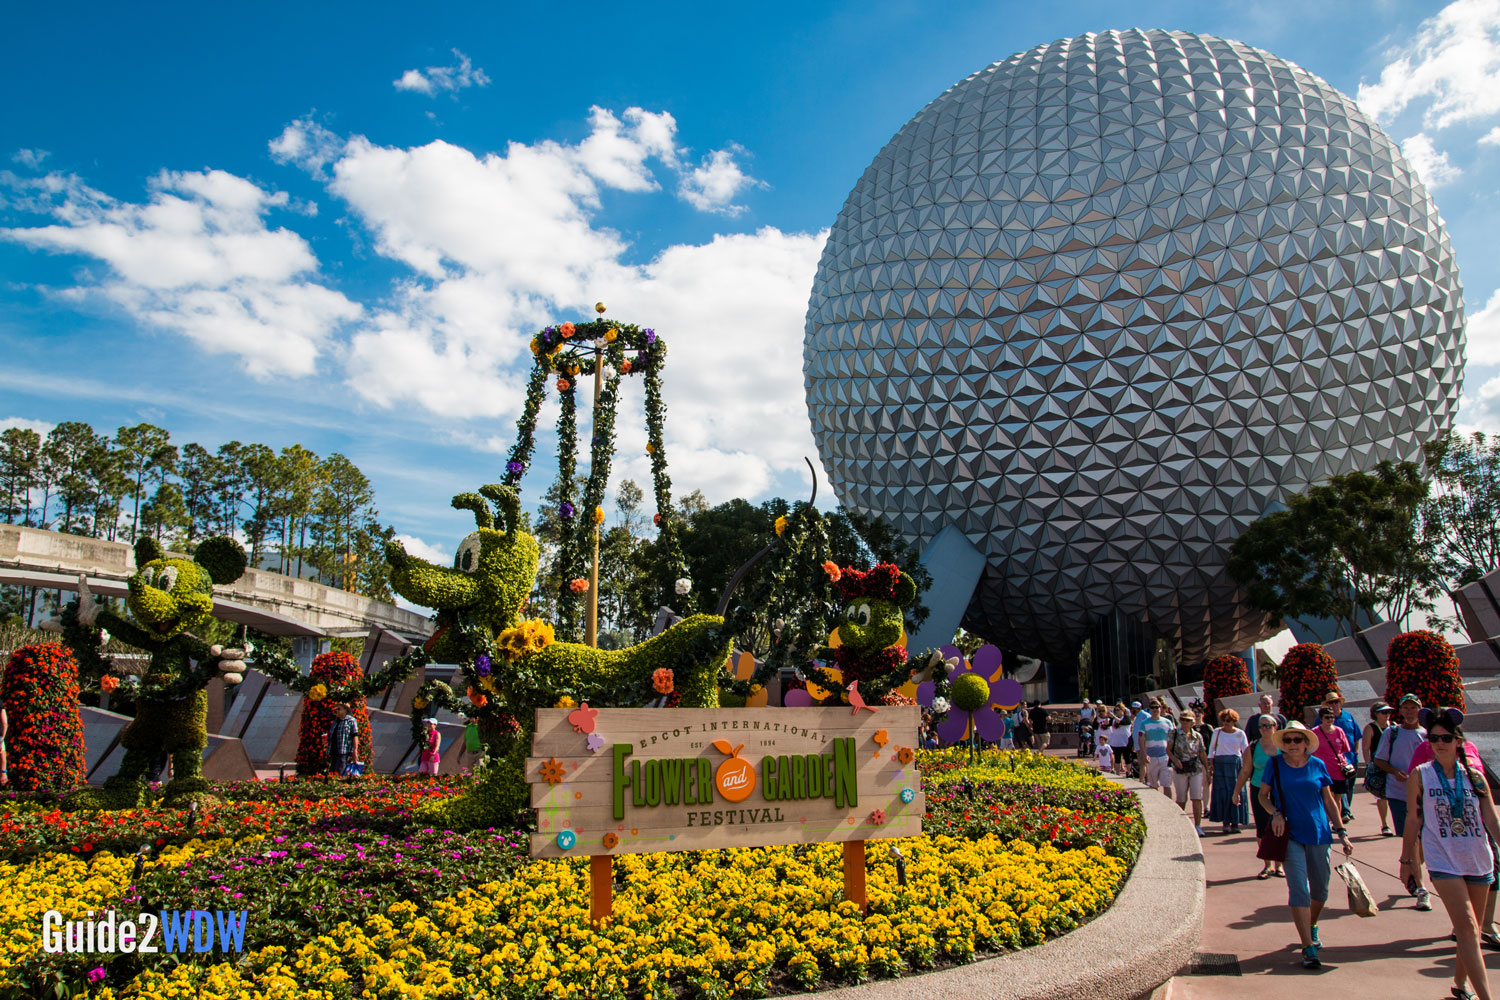 The topiaries of the 2017 Epcot Flower Garden Festival Guide2WDW